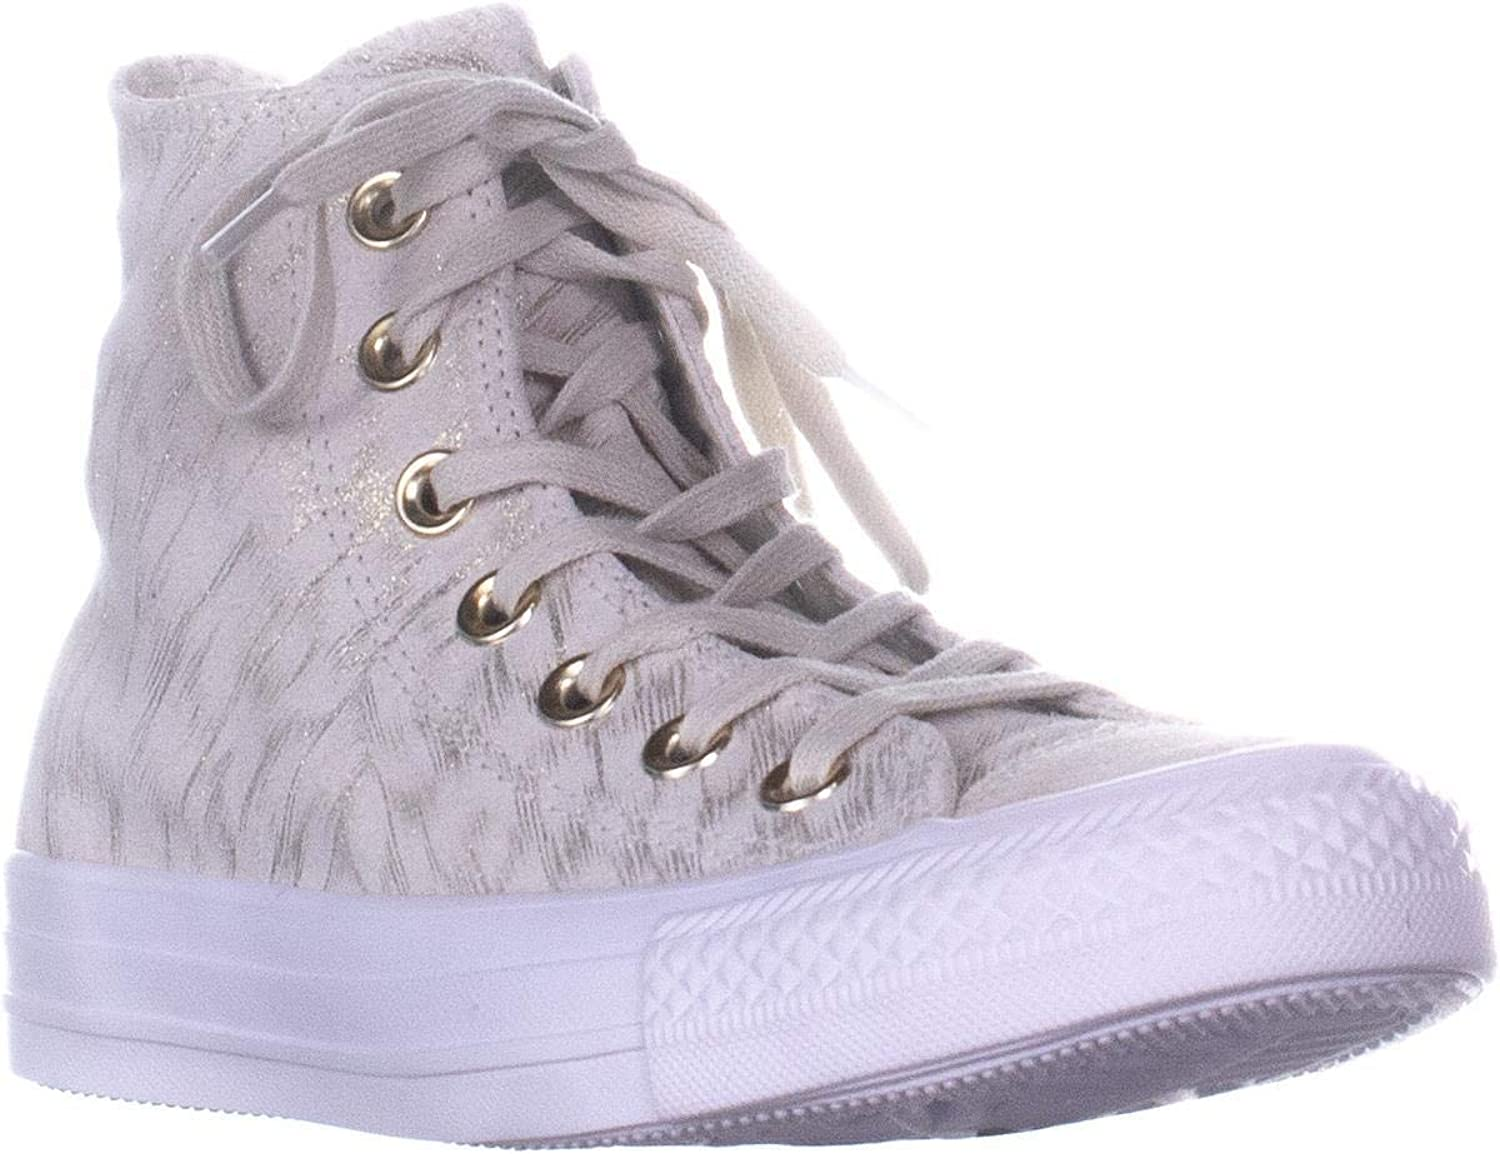 Converse Womens Metallic Suede Casual shoes